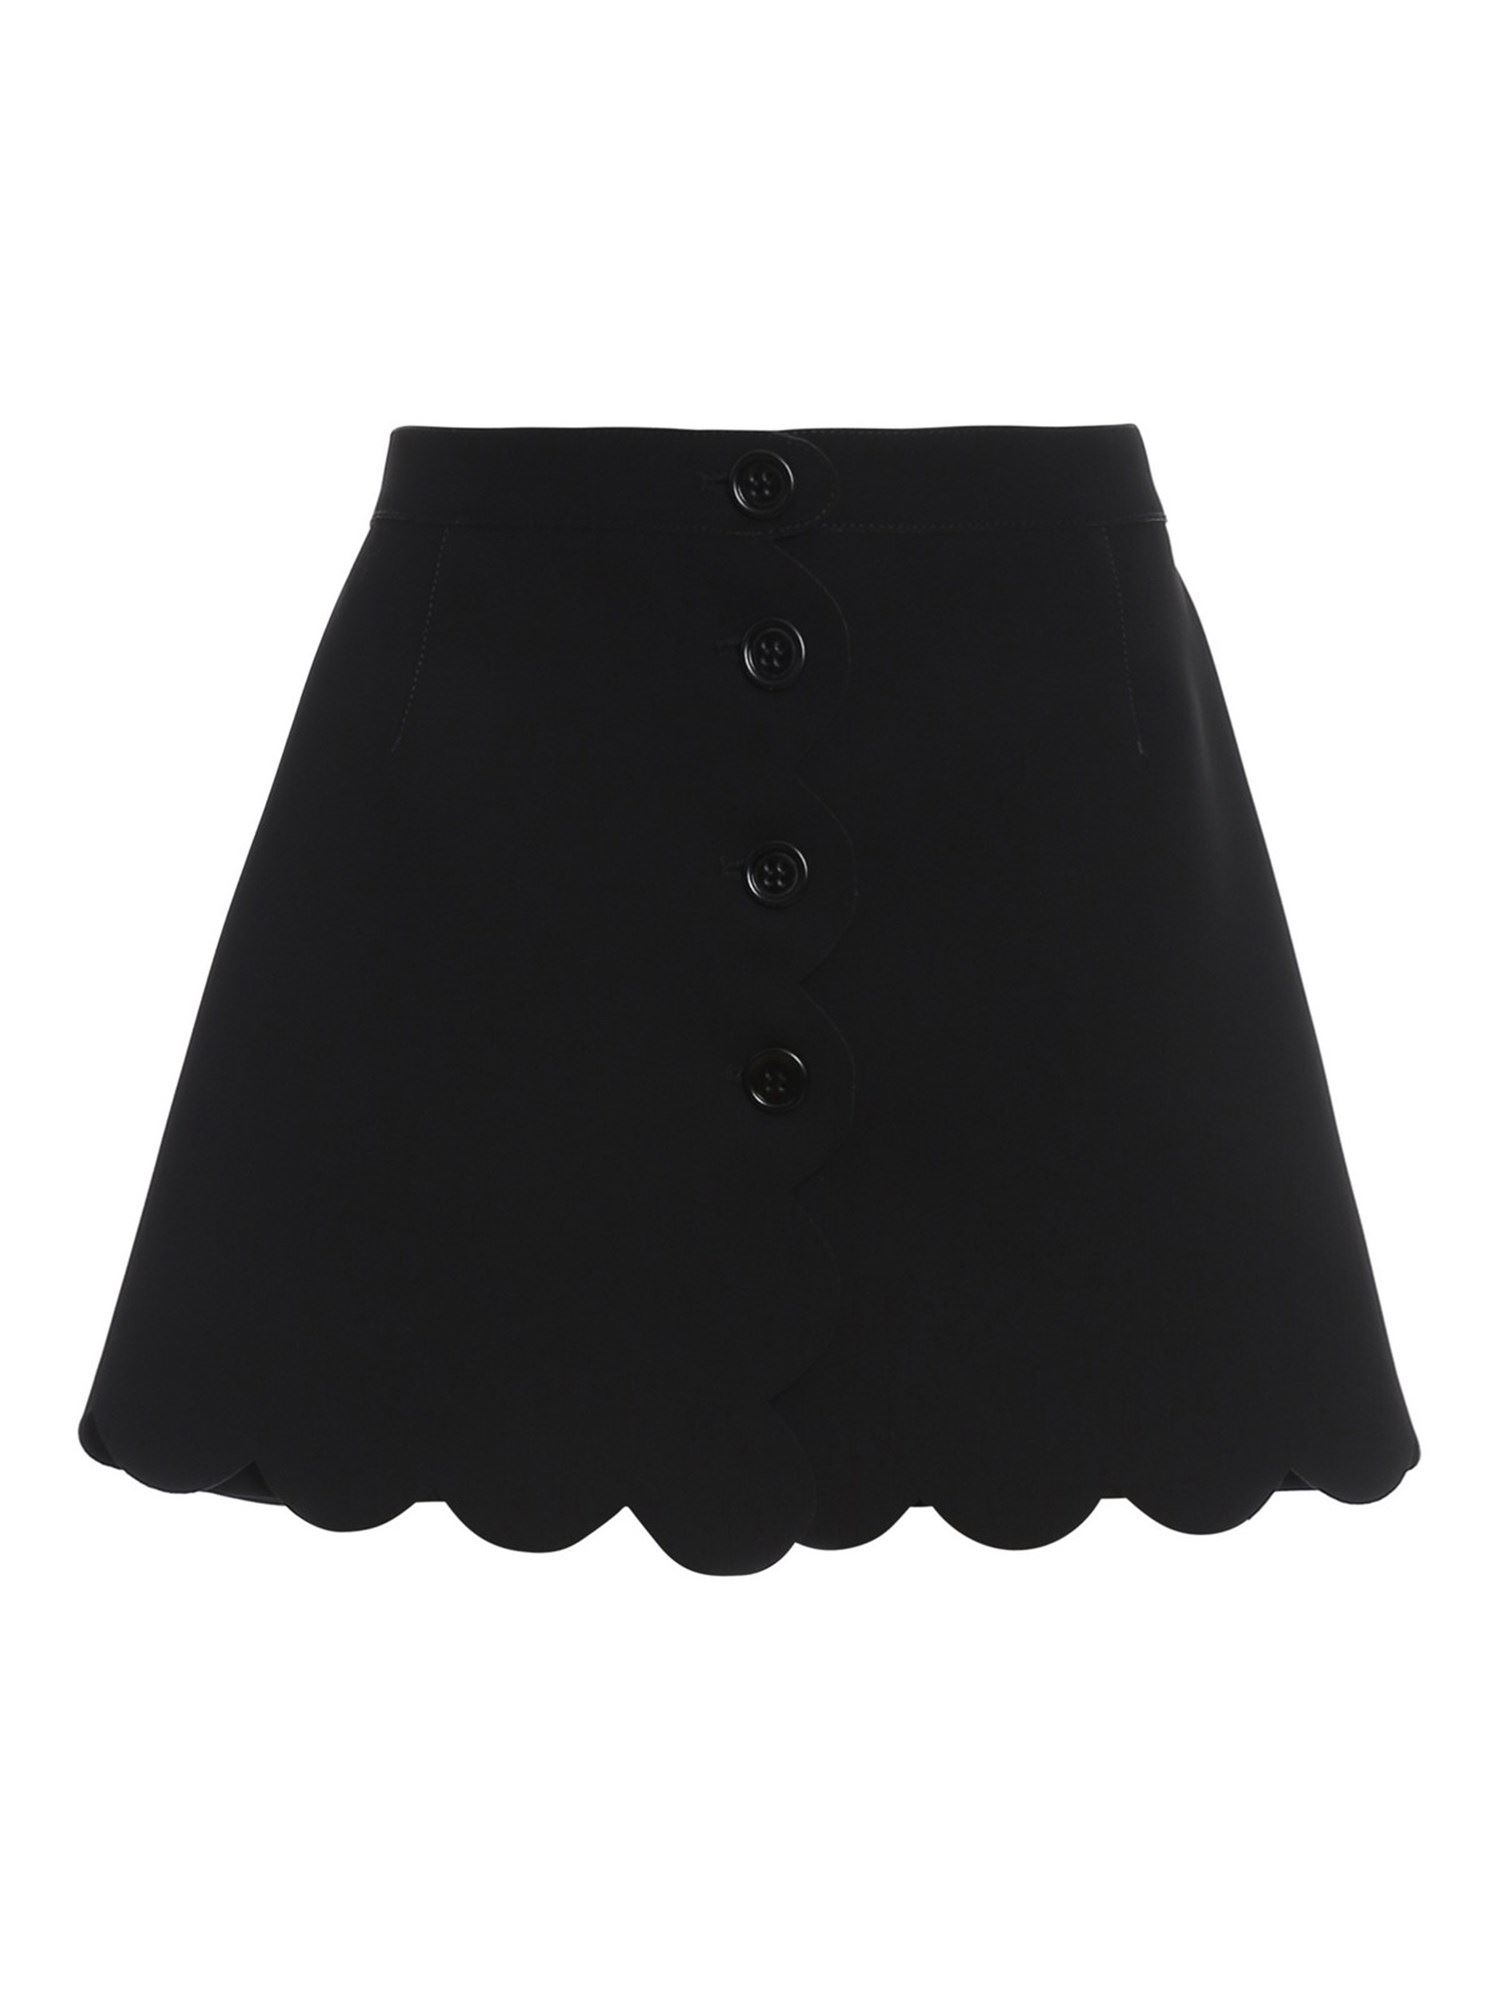 RED VALENTINO TECH FABRIC SCALLOPED SHORTS IN BLACK